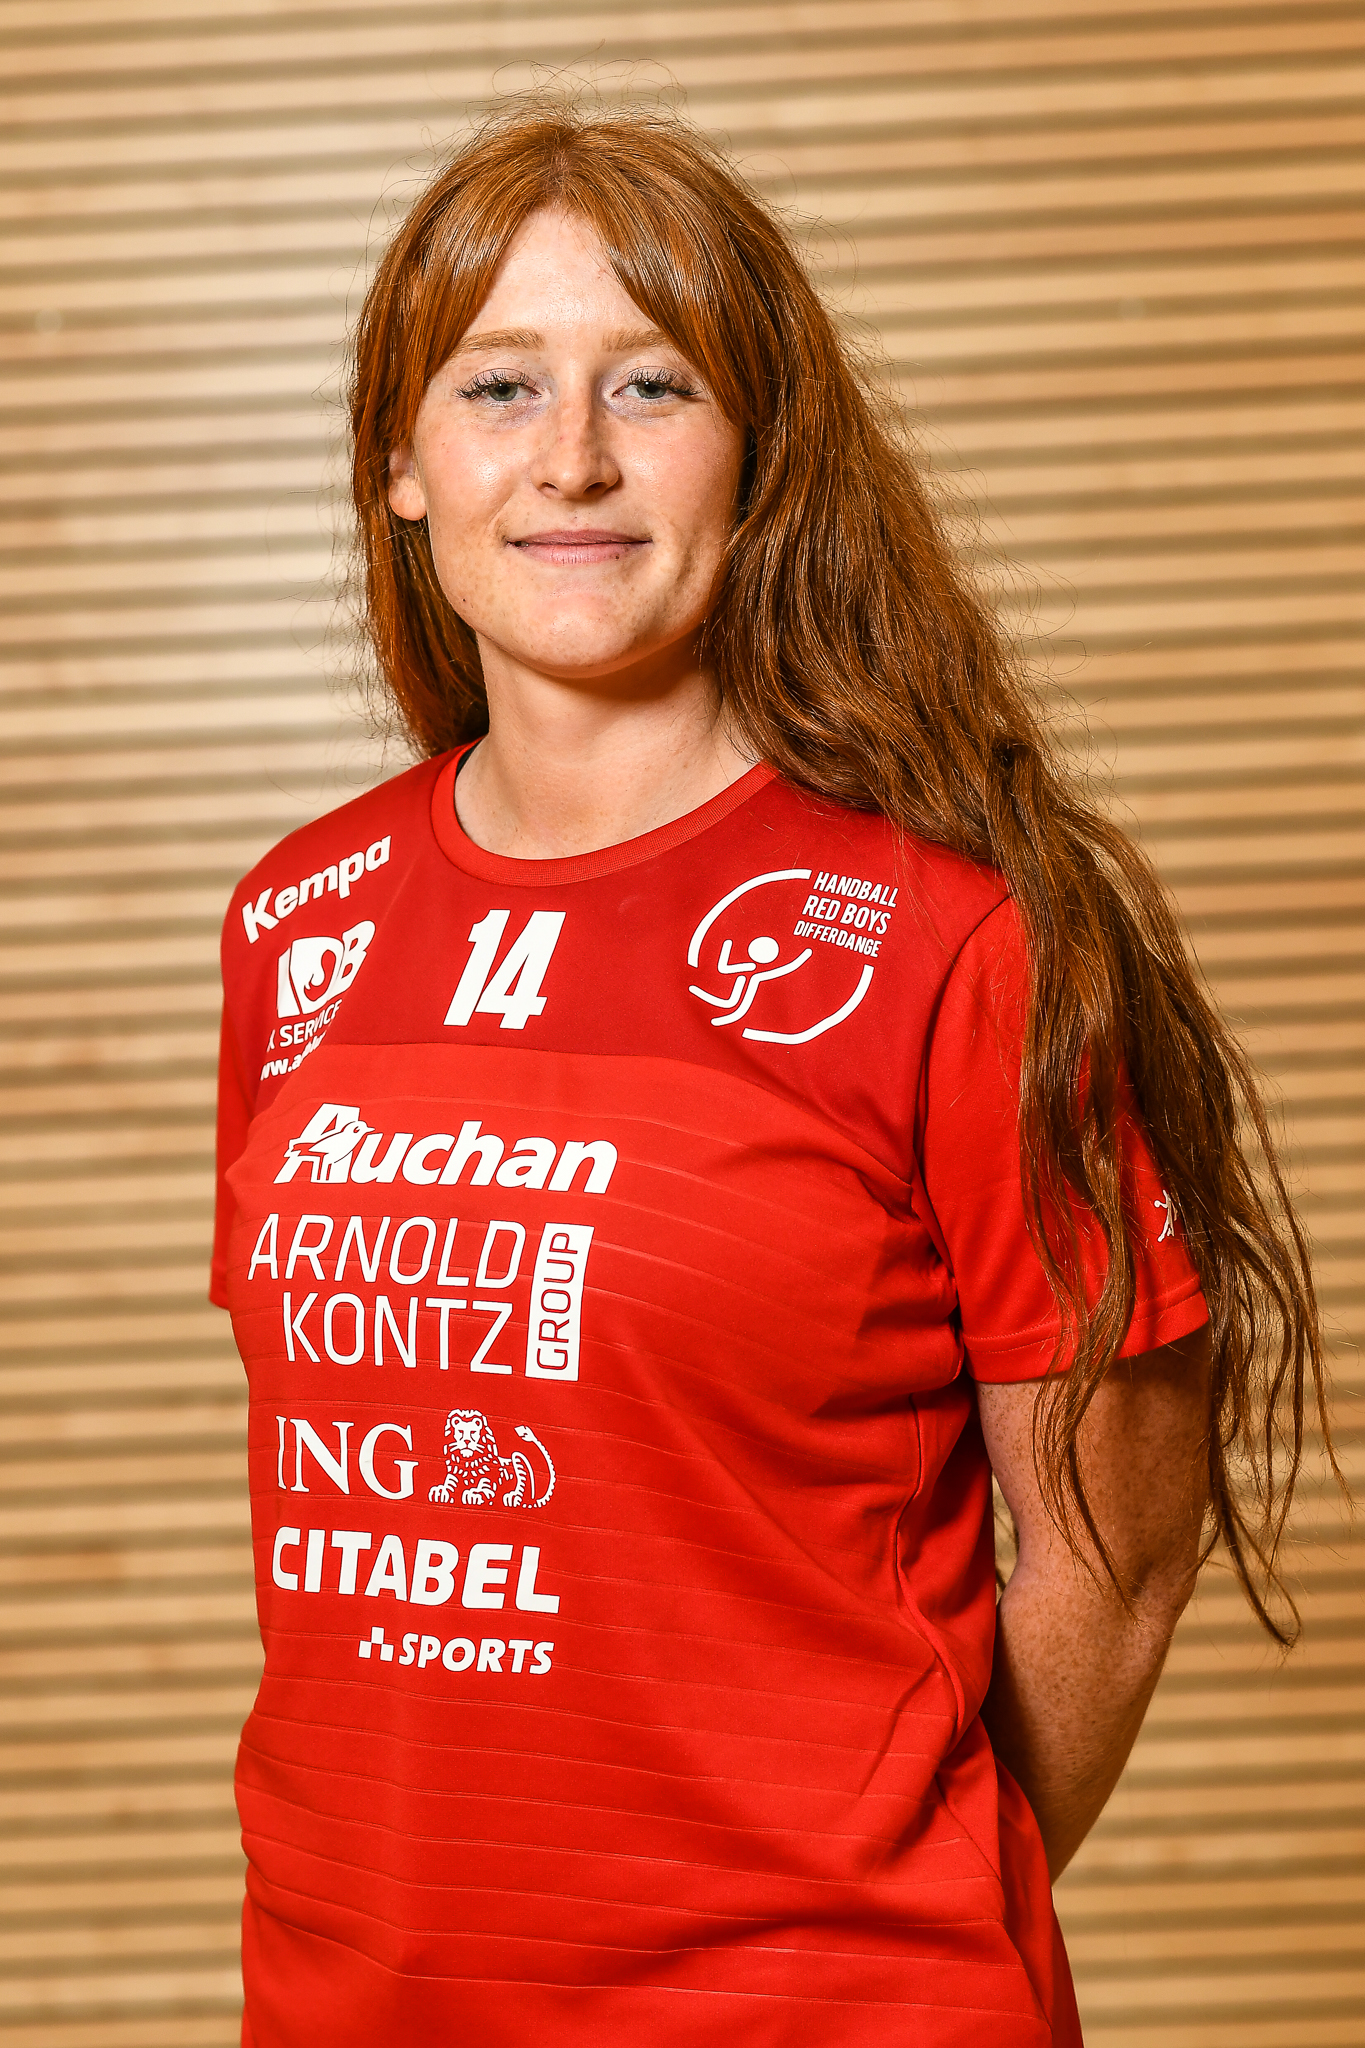 https://handball.lu/redboys/wp-content/uploads/2020/09/VAL_5893-208.jpg